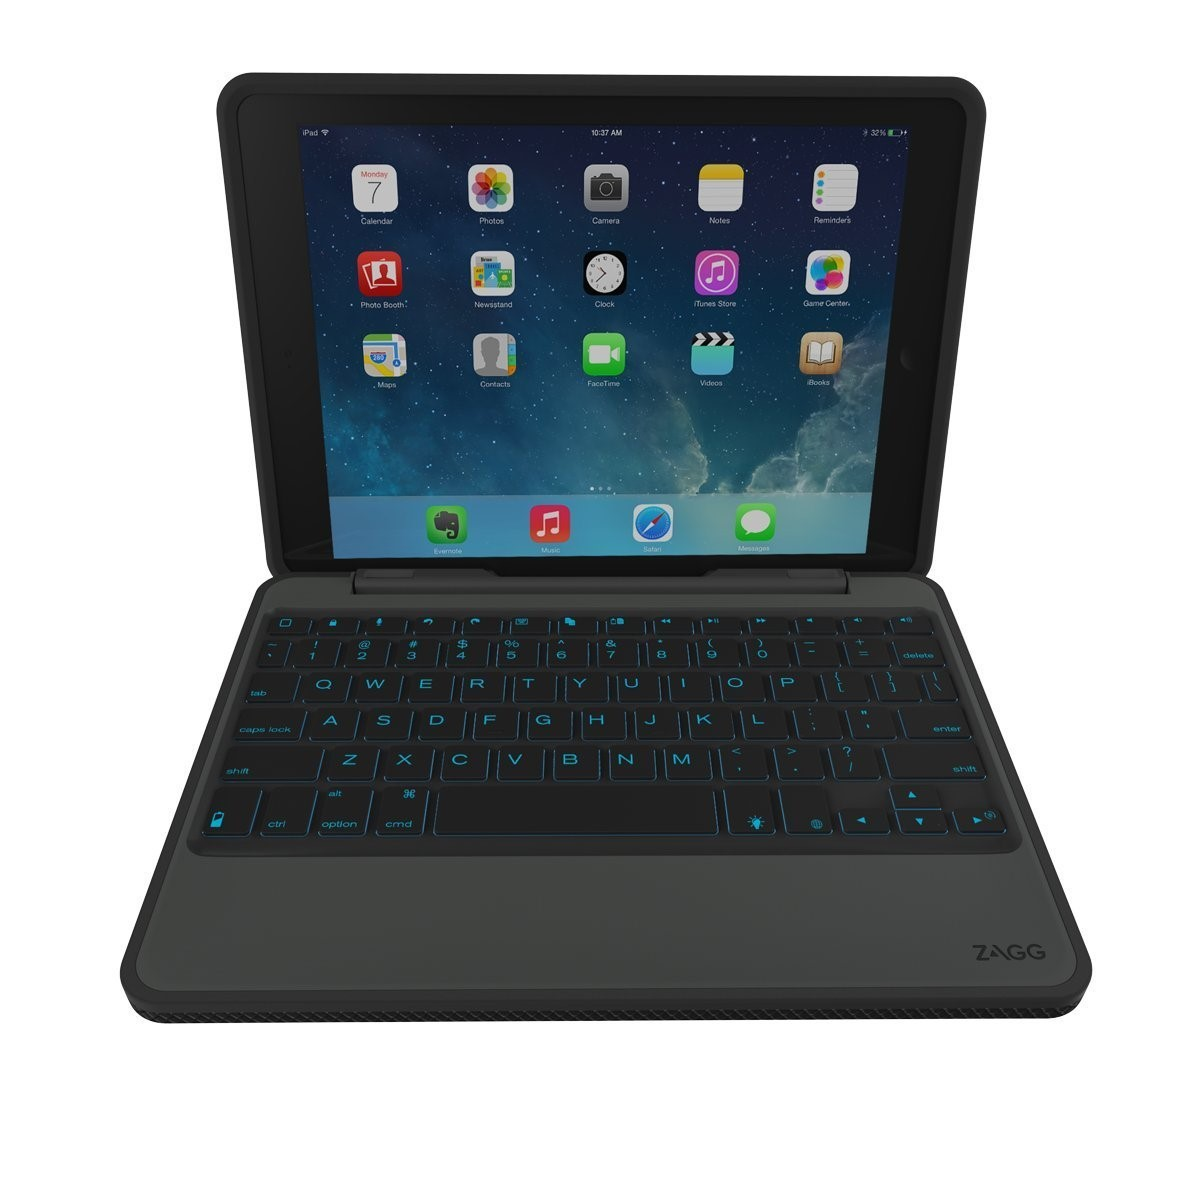 ZAGG Rugged Book Case Durable Hinged with Detachable Backlit Keyboard for iPad Air 2 Black (ID6RGK-BB0) by ZAGG